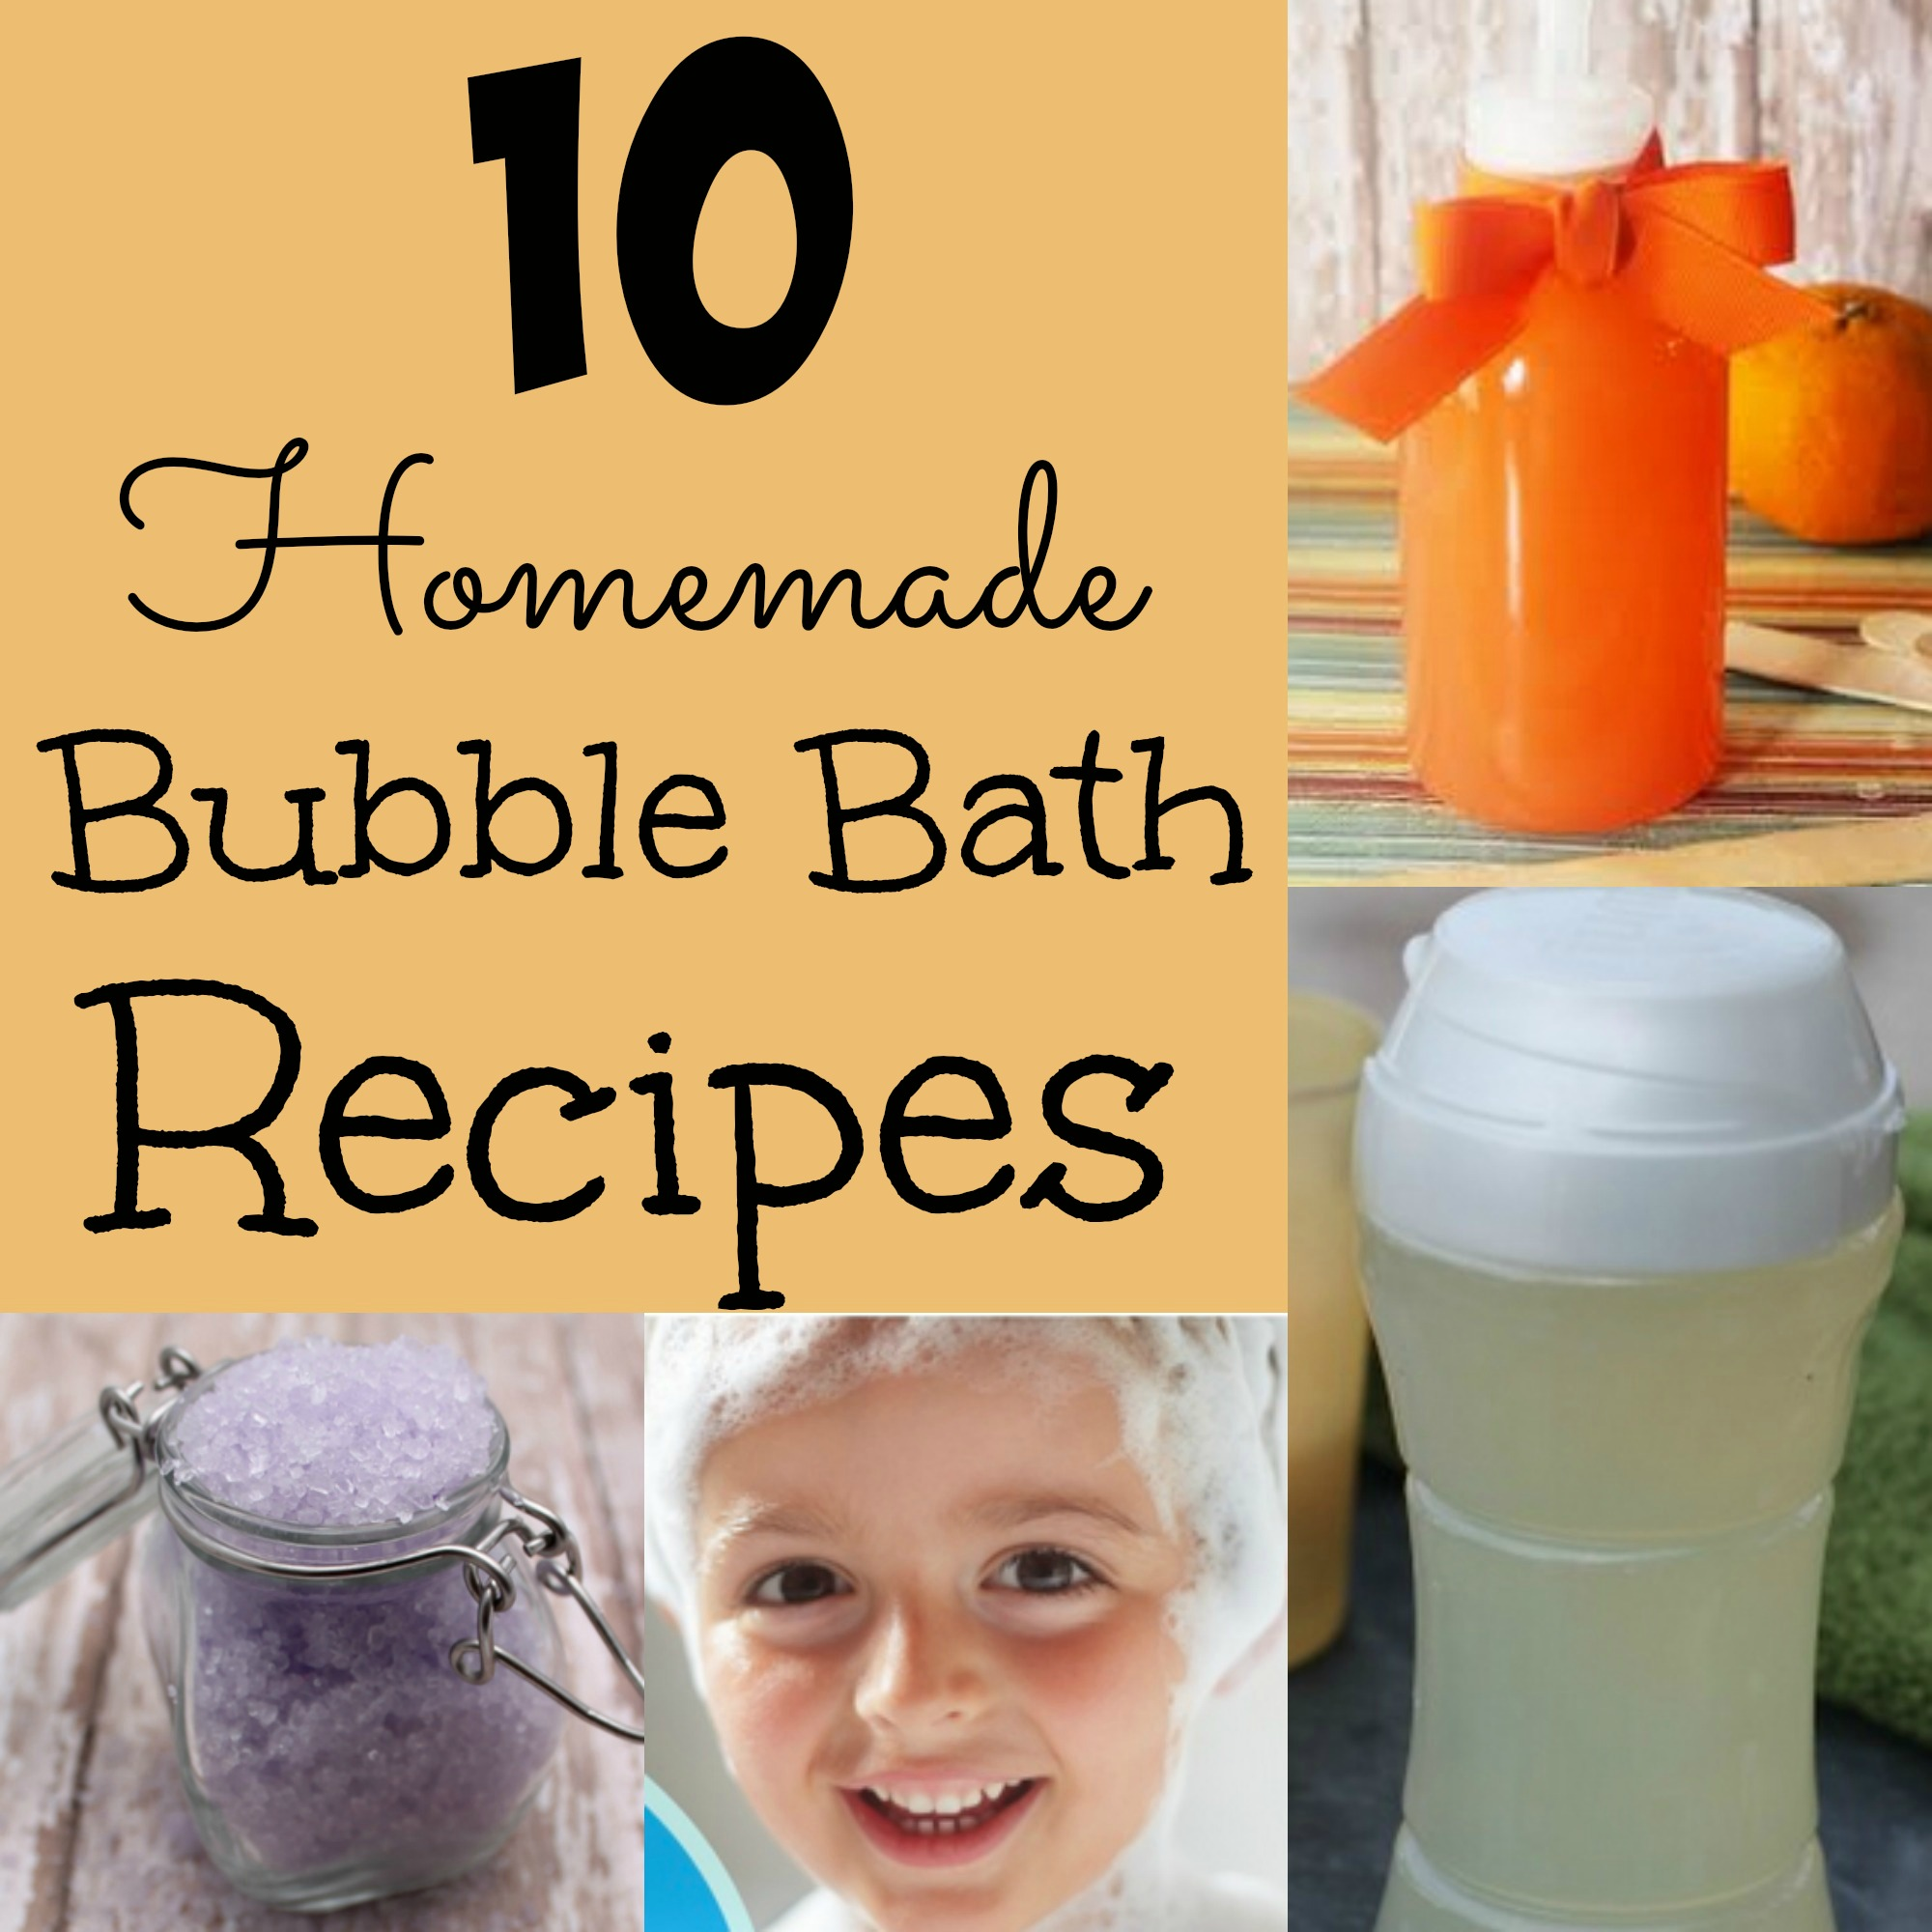 10 Homemade Bubble Bath Recipes Salts Bombs Paints and